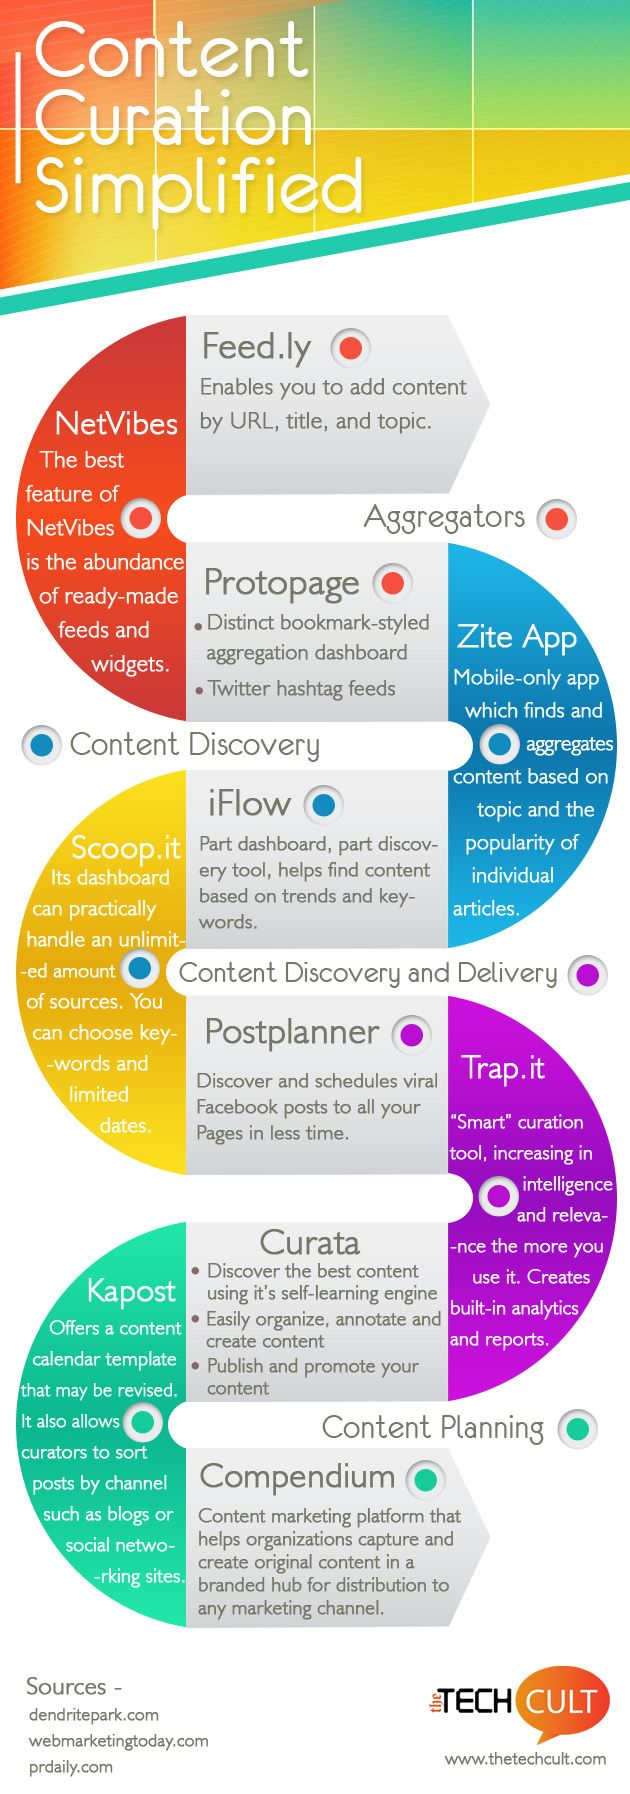 Content Curation Simplified #infographic #contentmarketing